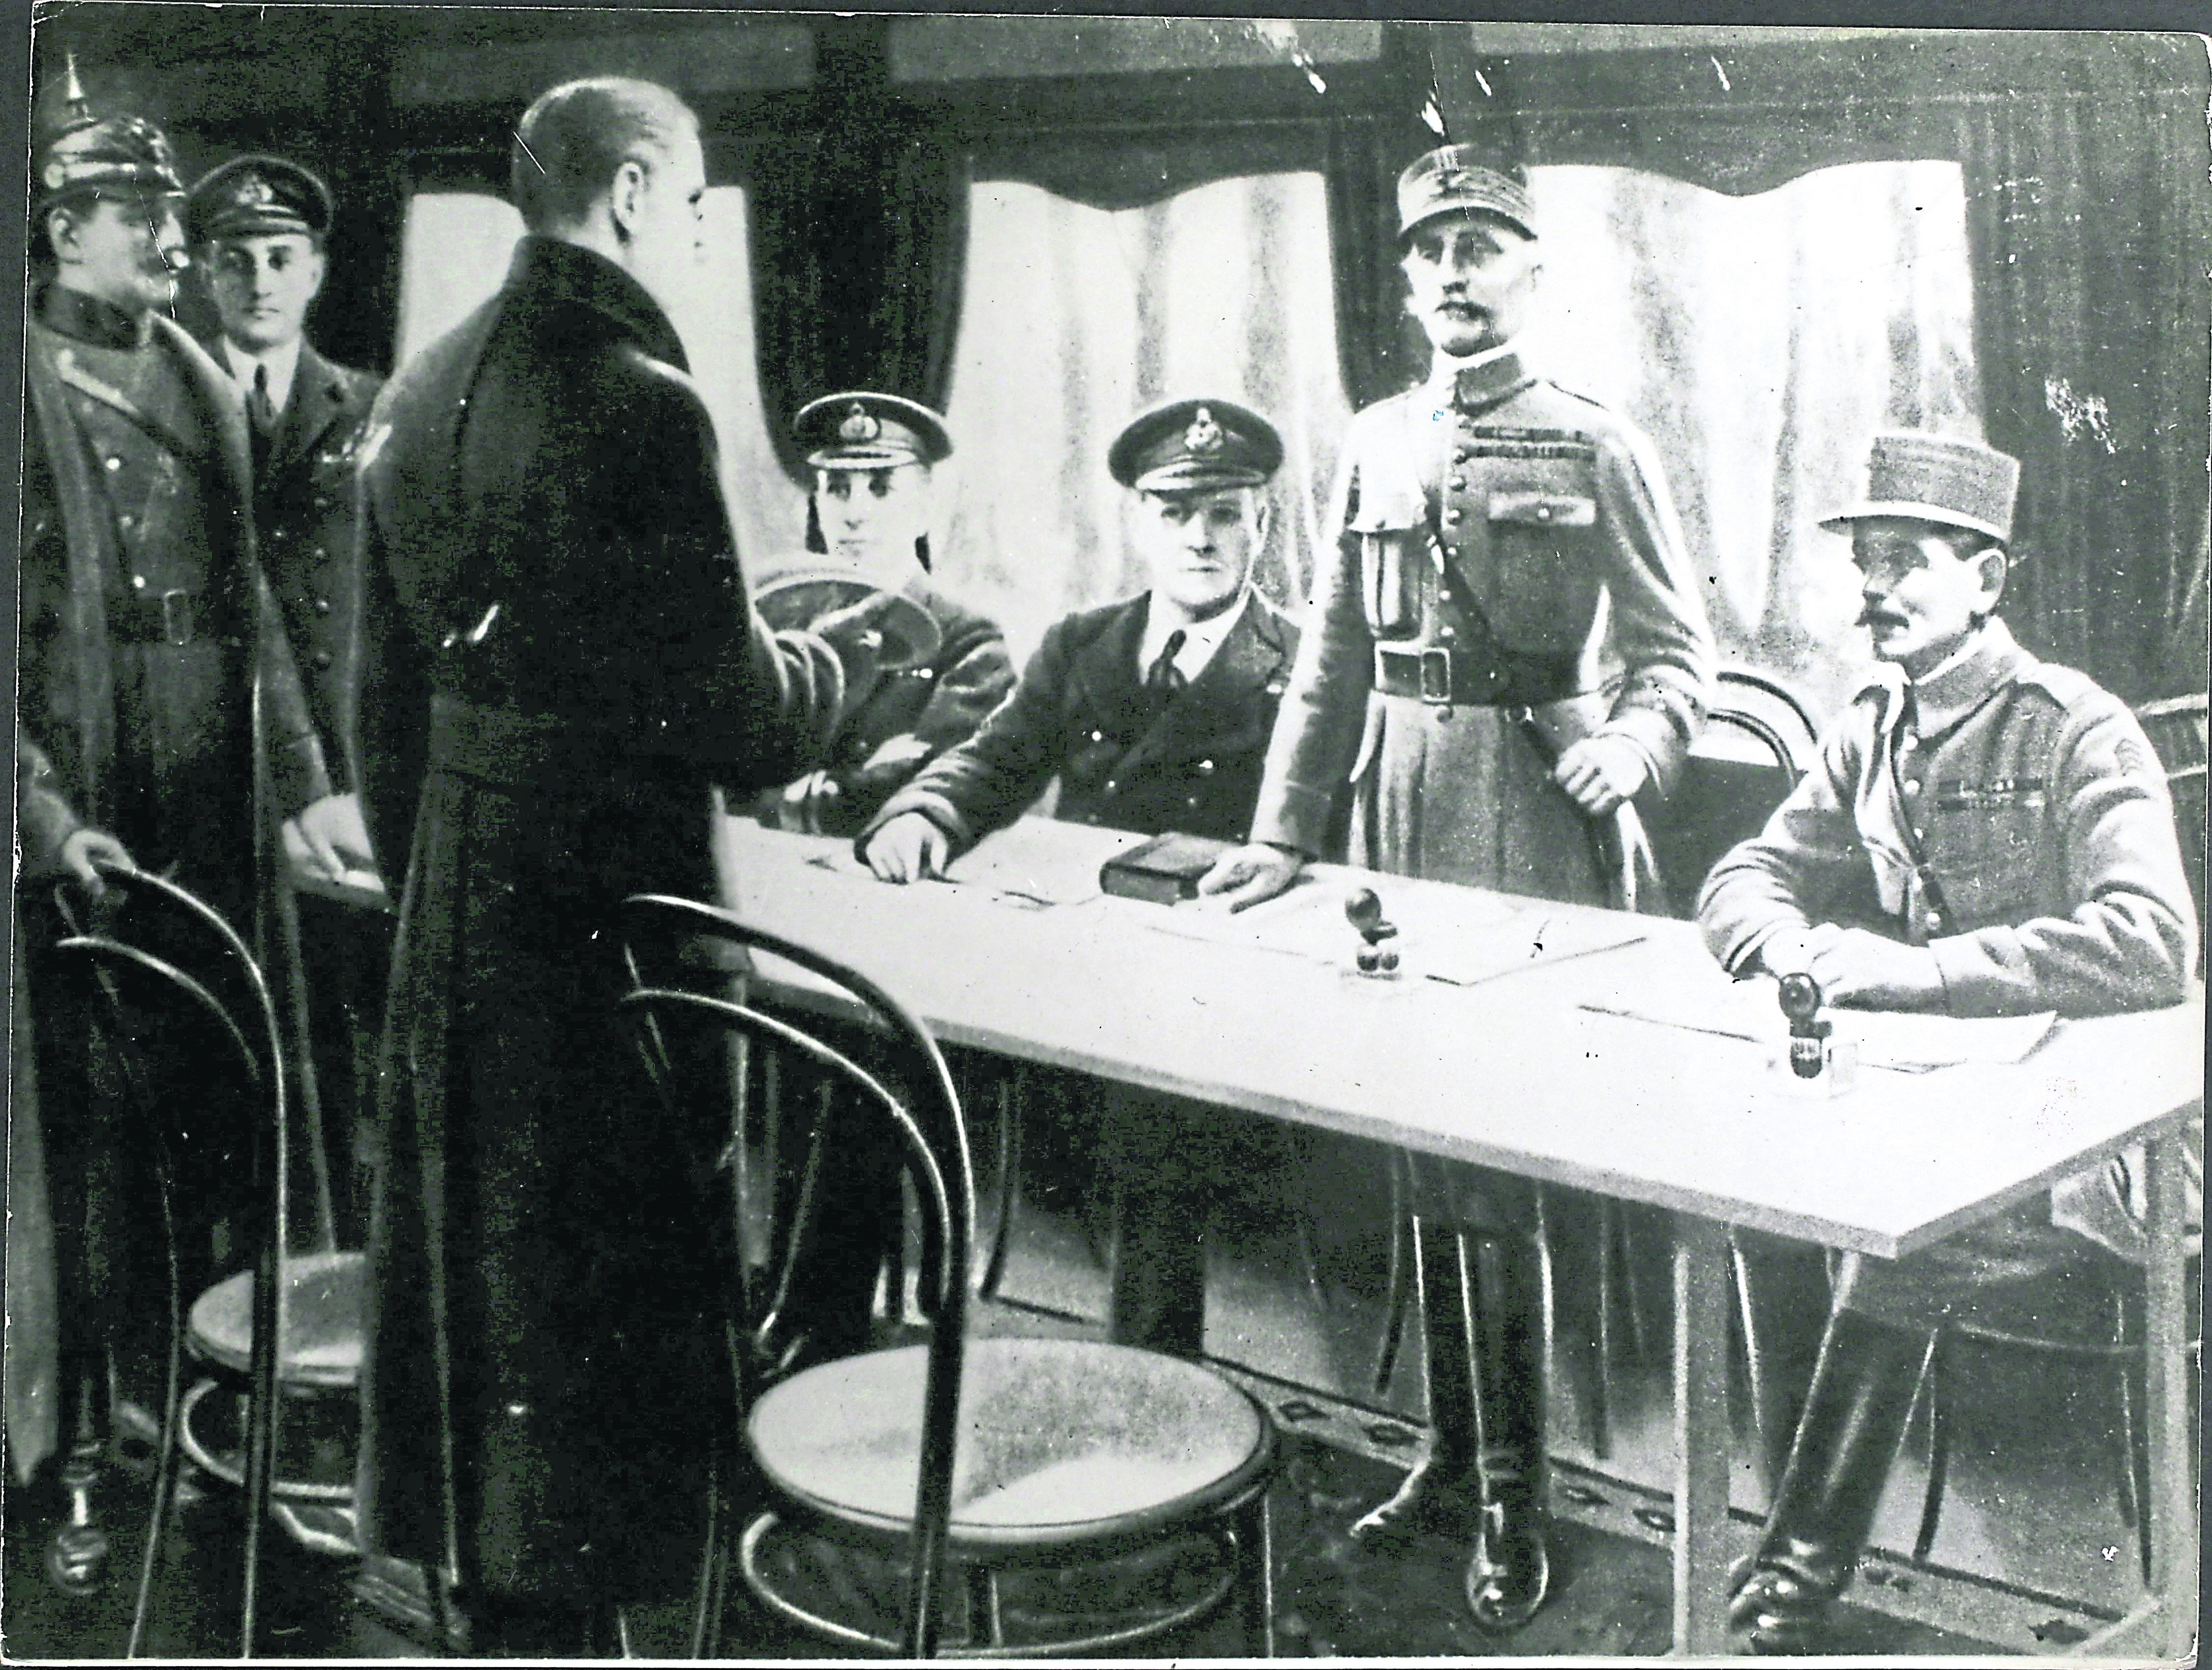 November 11 1918, in a railway coach at Compiegne, France, Supreme Allied Commander Marshal Foch stands to receive the  German plenipotentiaries.